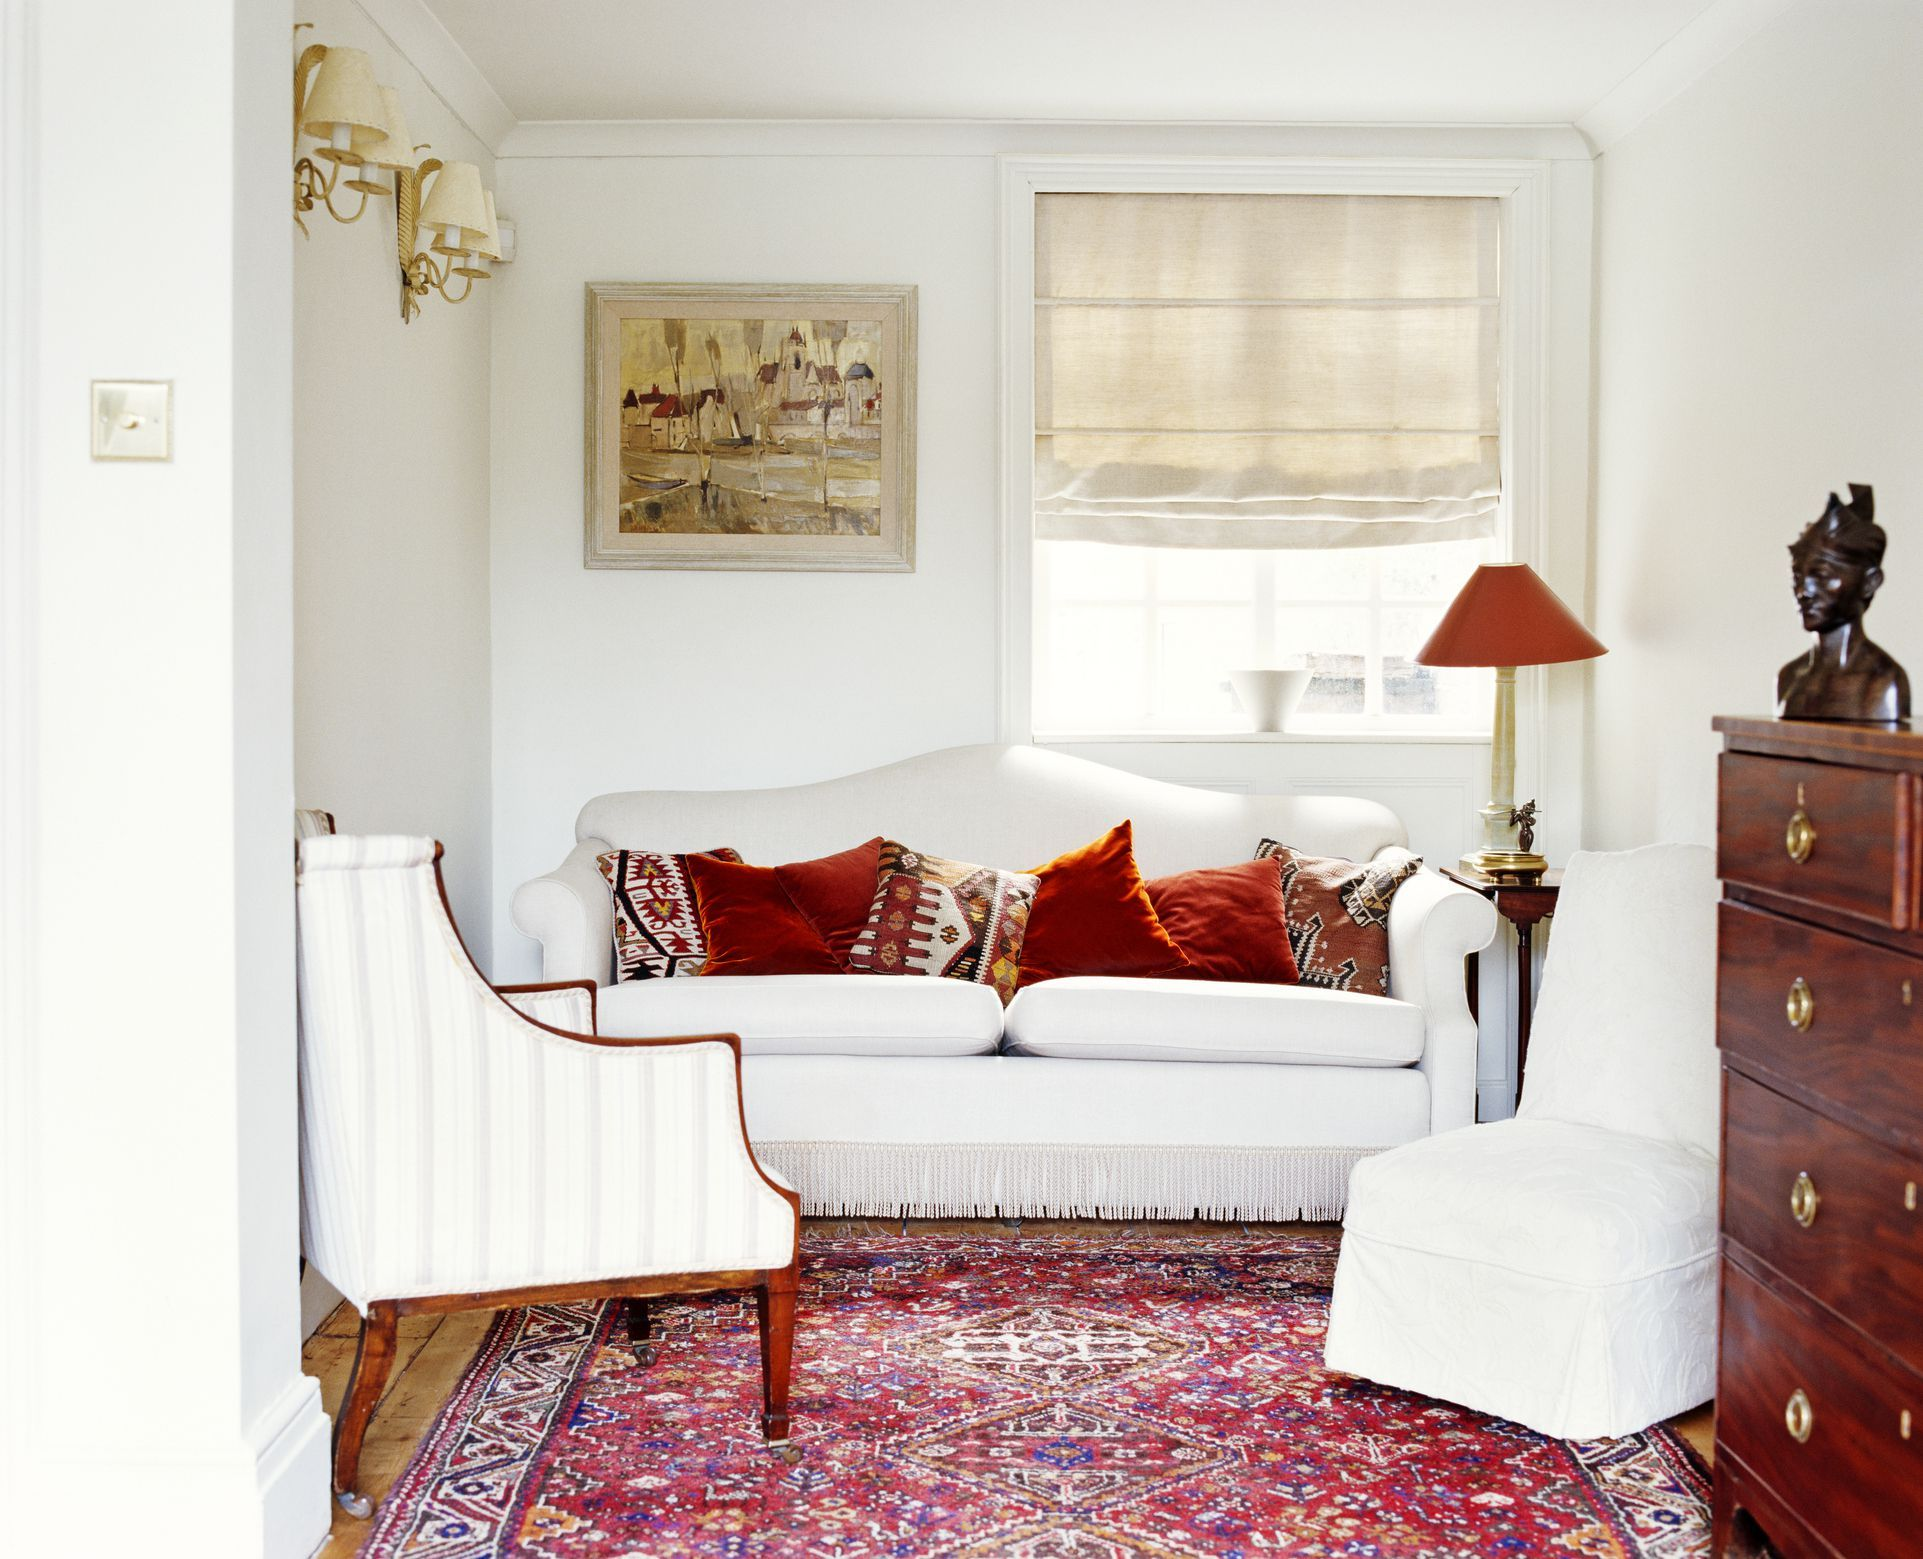 Don't Buy an Area Rug Without Considering These Tips